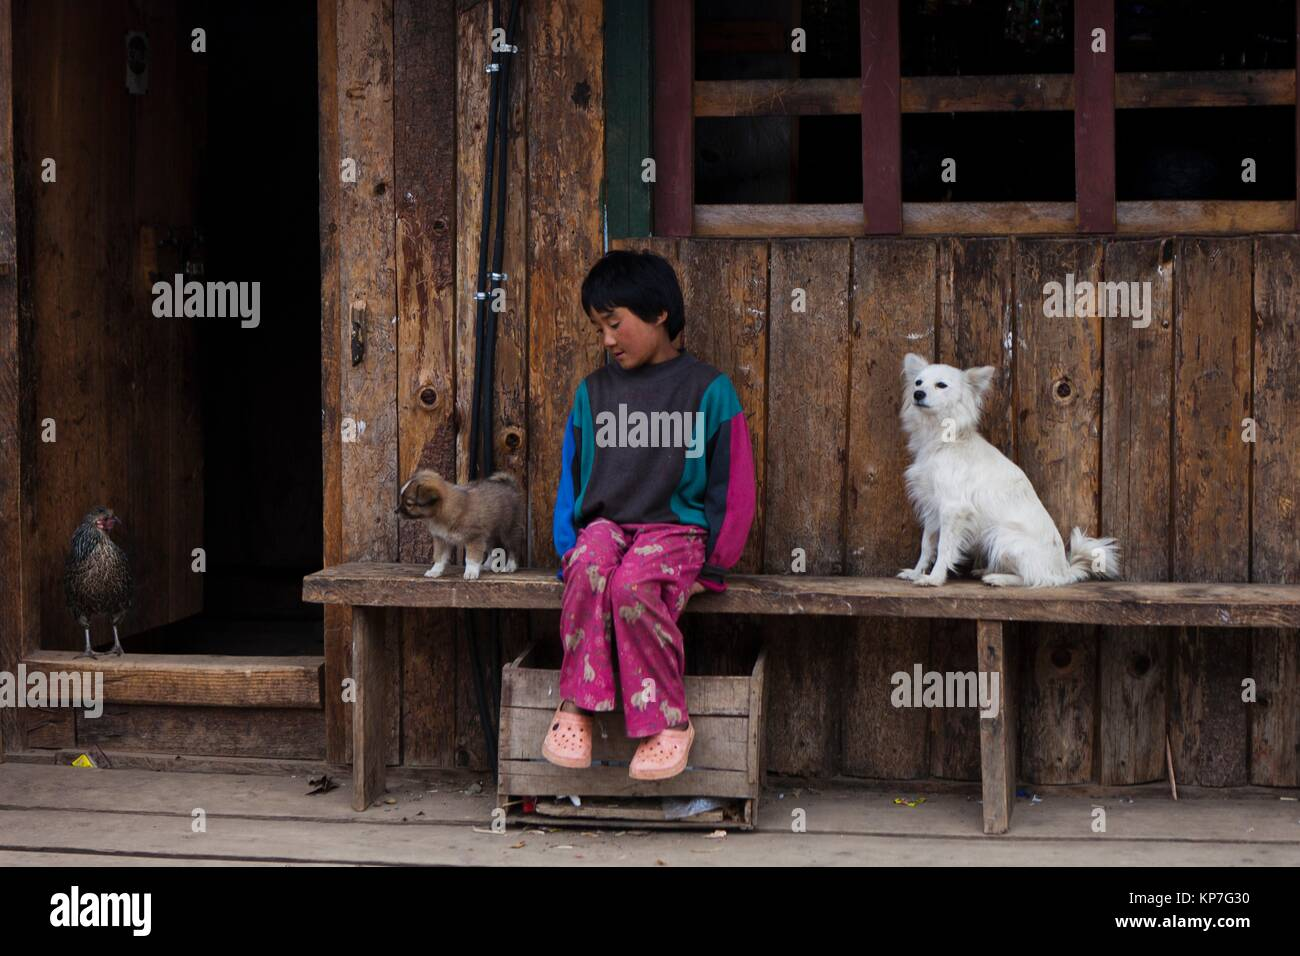 A Bhutanese girl at the entrance of her house with domestic animals, Gangtey, Bhutan, Asia - Stock Image